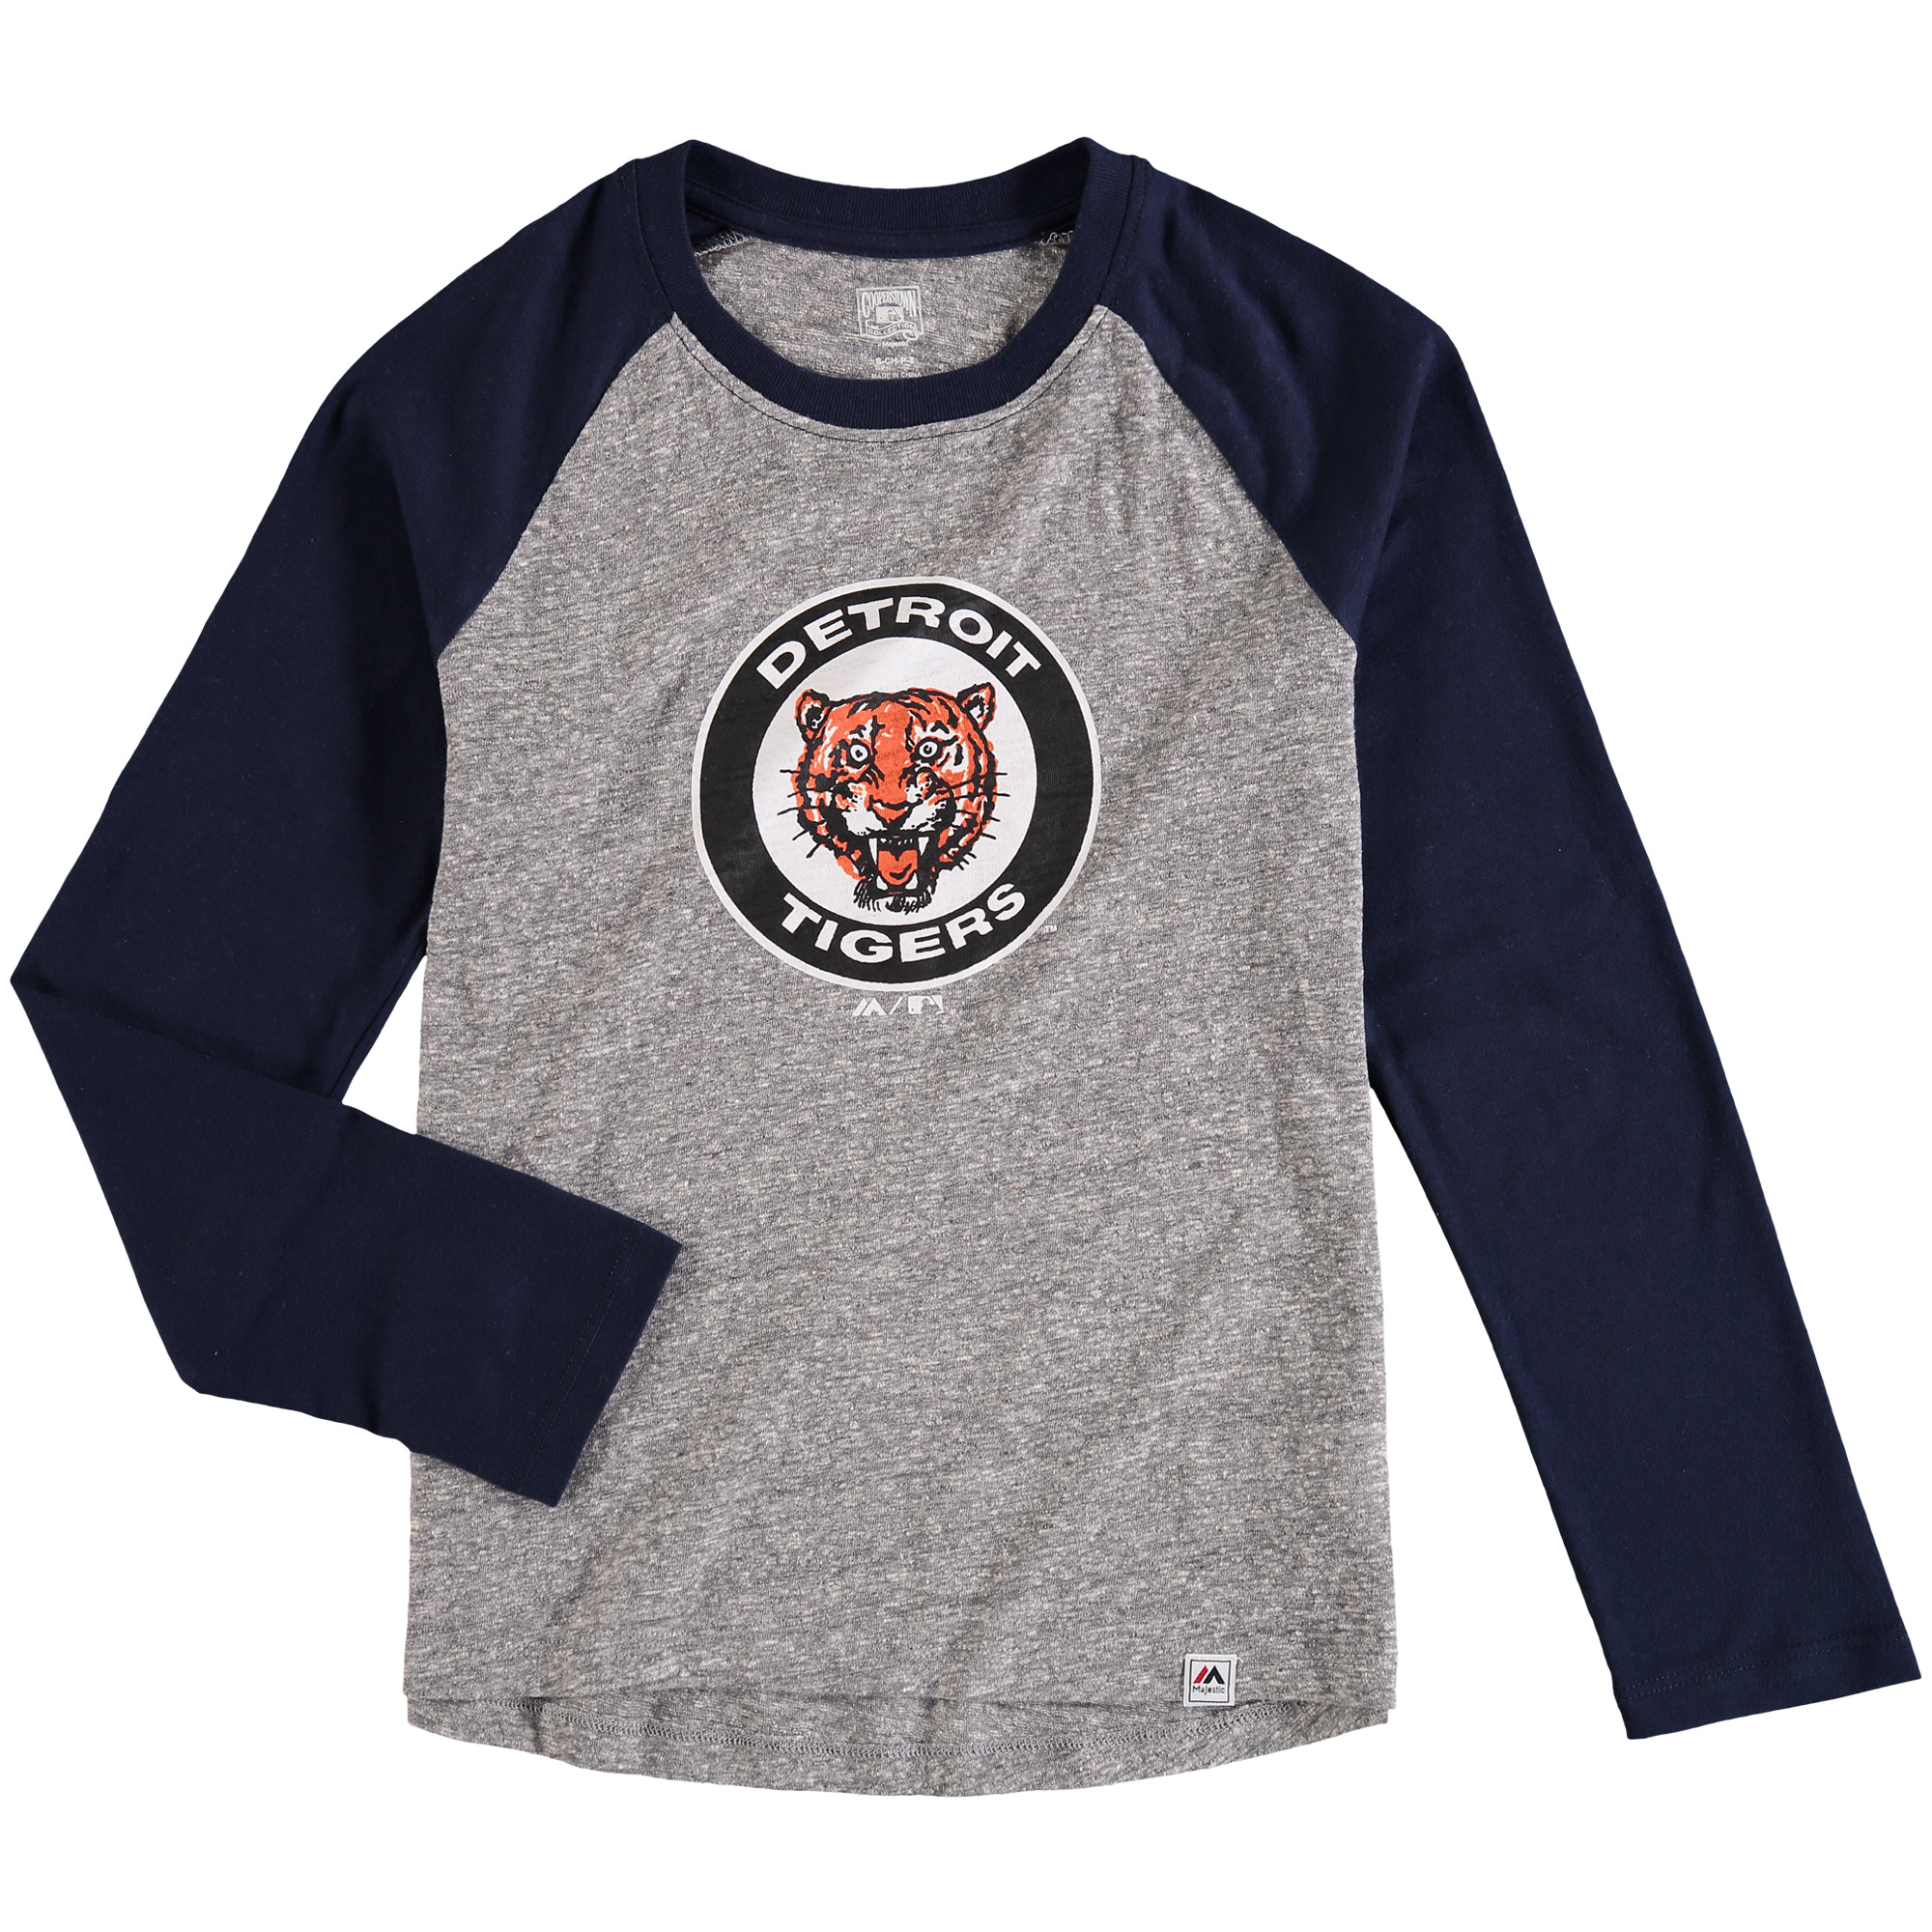 Detroit Tigers Majestic Youth Two to One Margin Long Sleeve Raglan T-Shirt - Gray